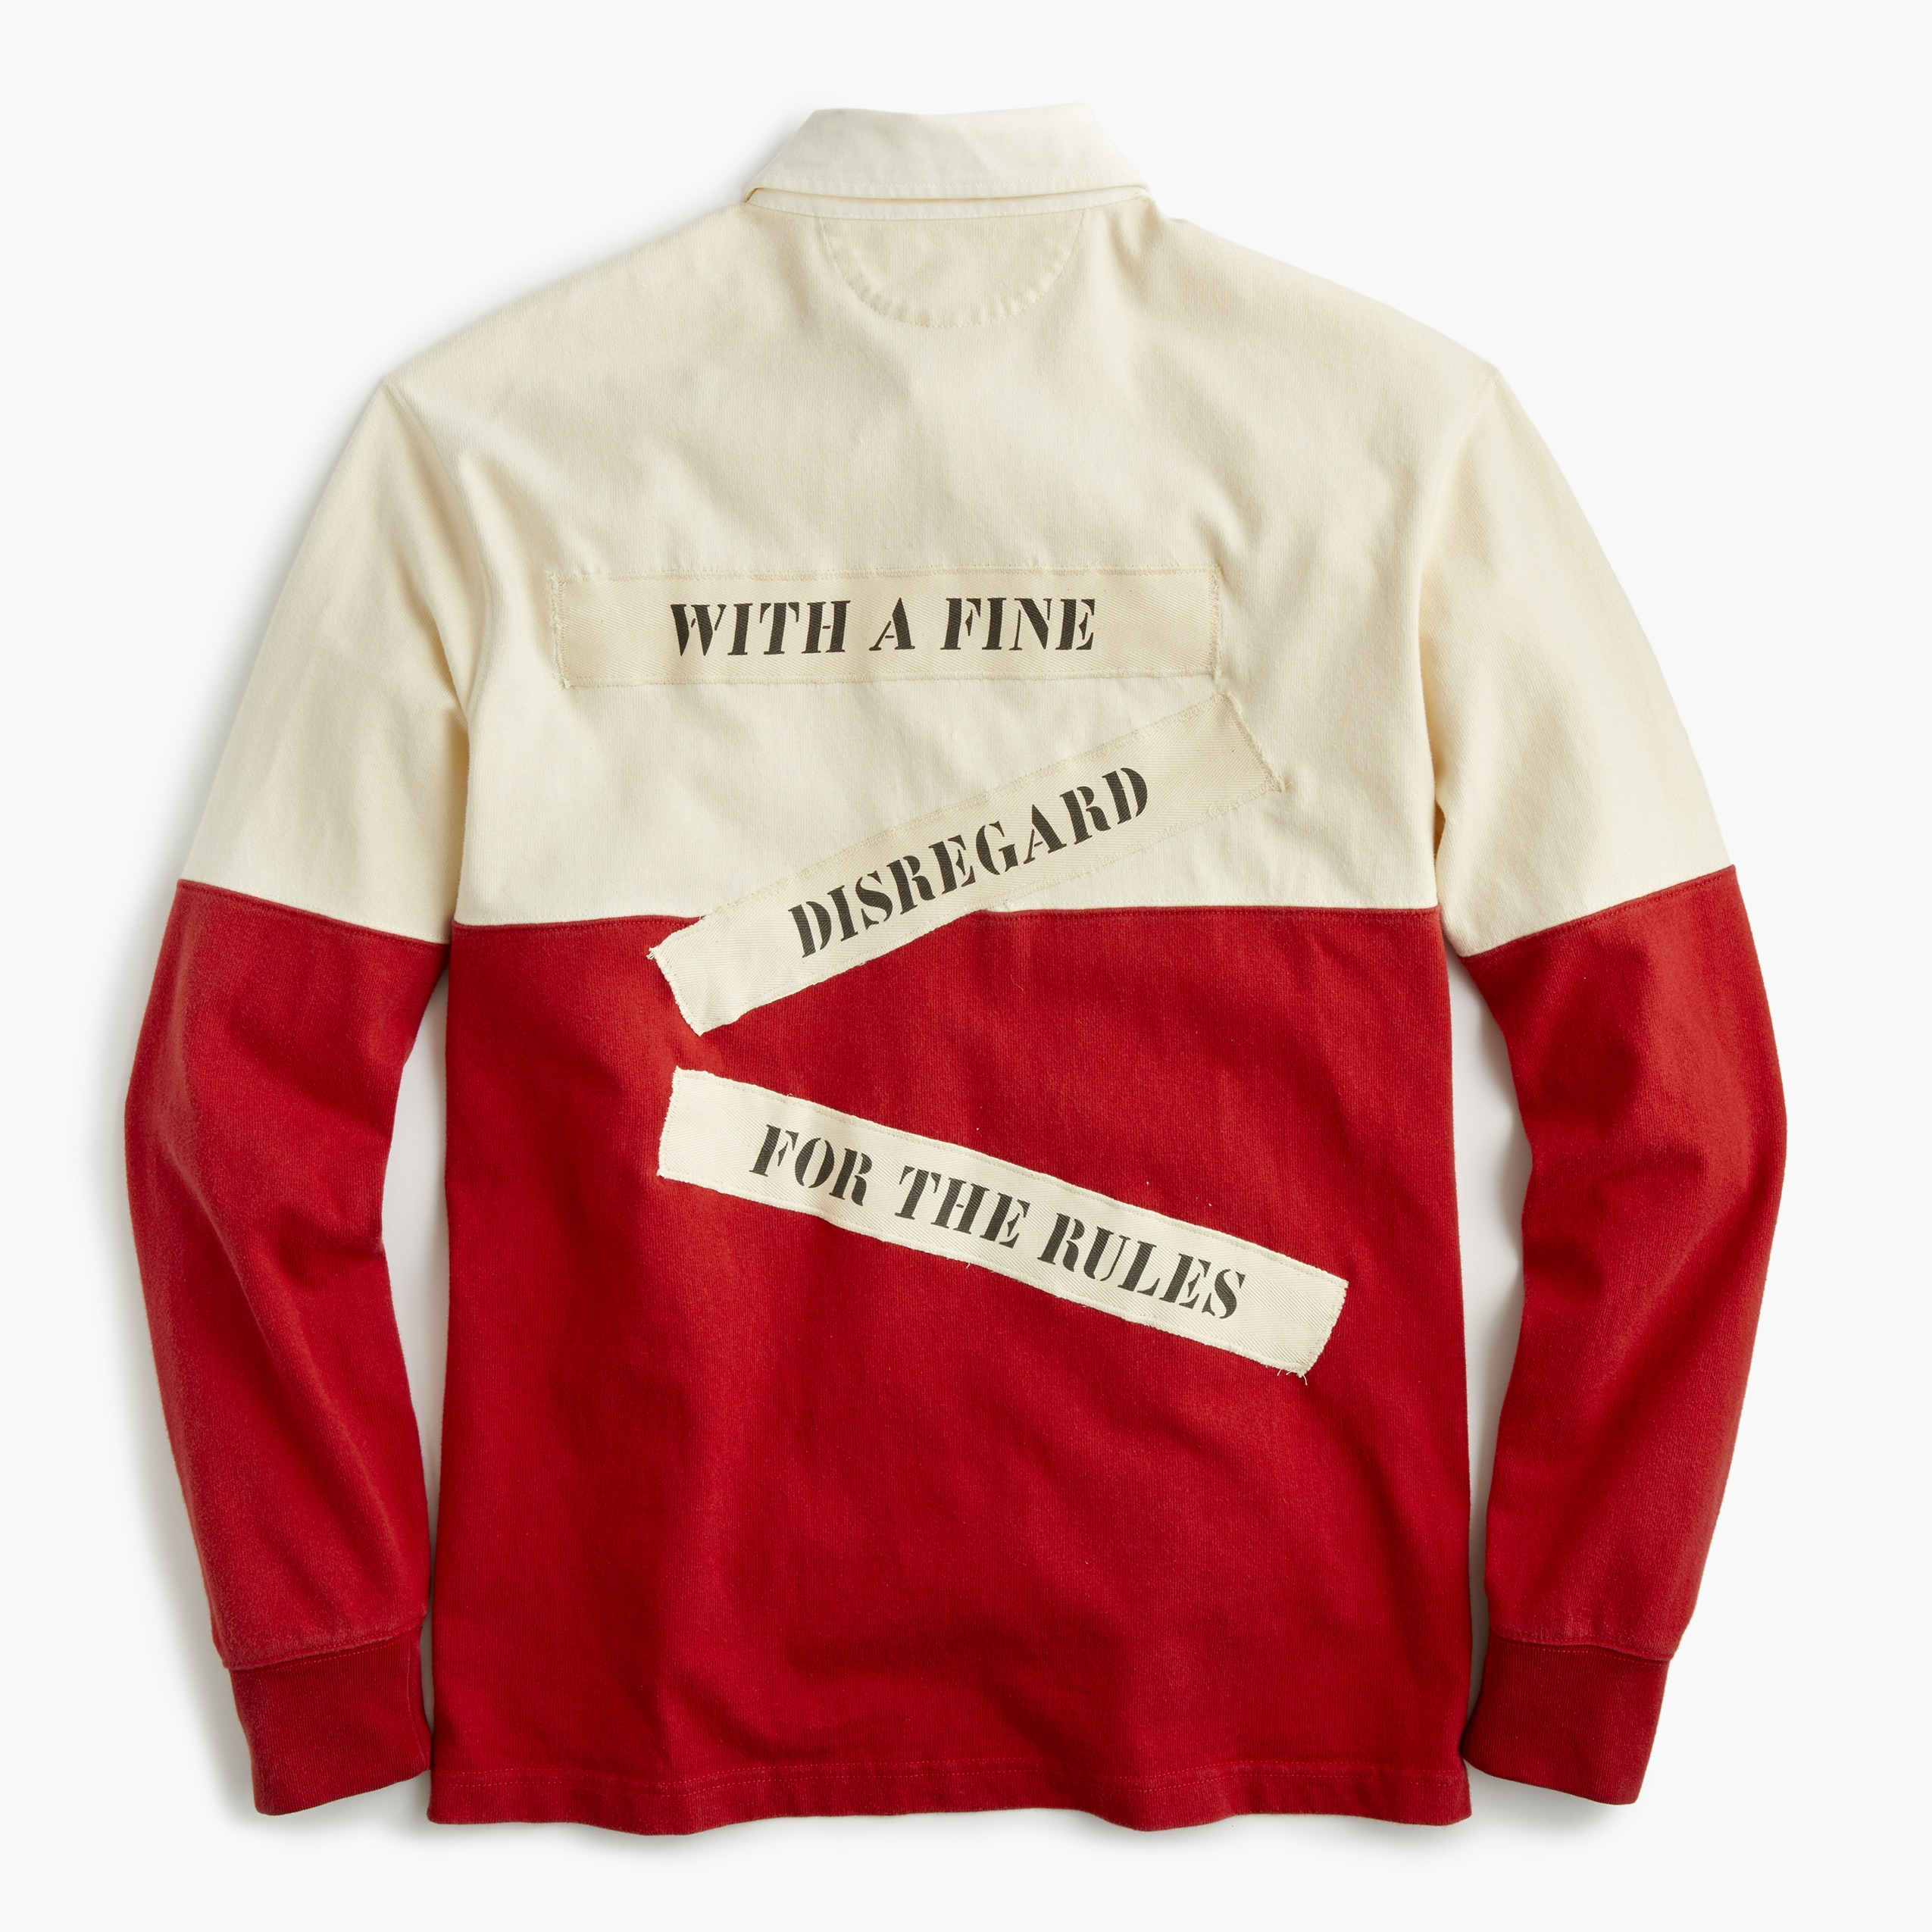 2fc879e52 J.Crew and Rowing Blazers Collaborate on a Heritage Rugby Shirt